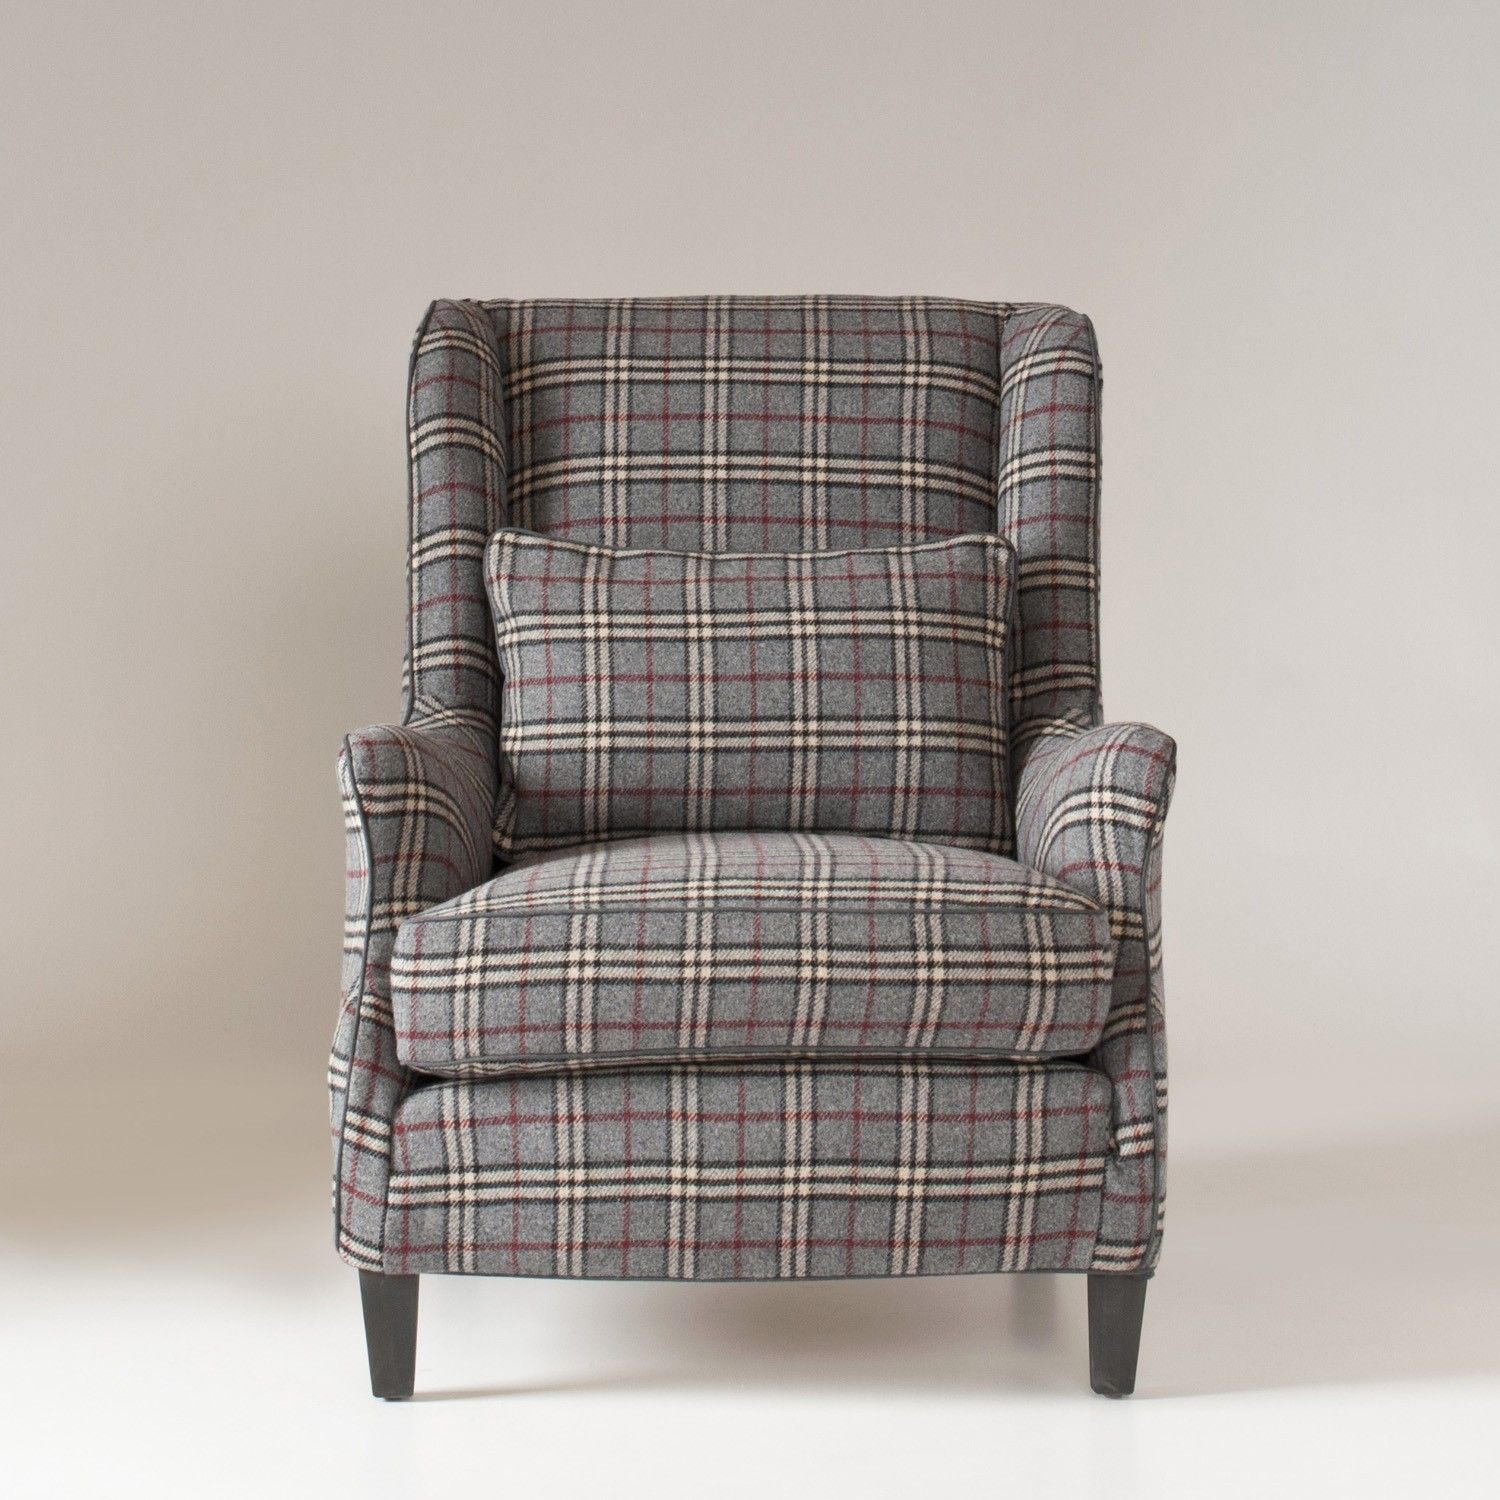 Stephenson Chair Slipcover Library Plaid Wool Schoolhouse